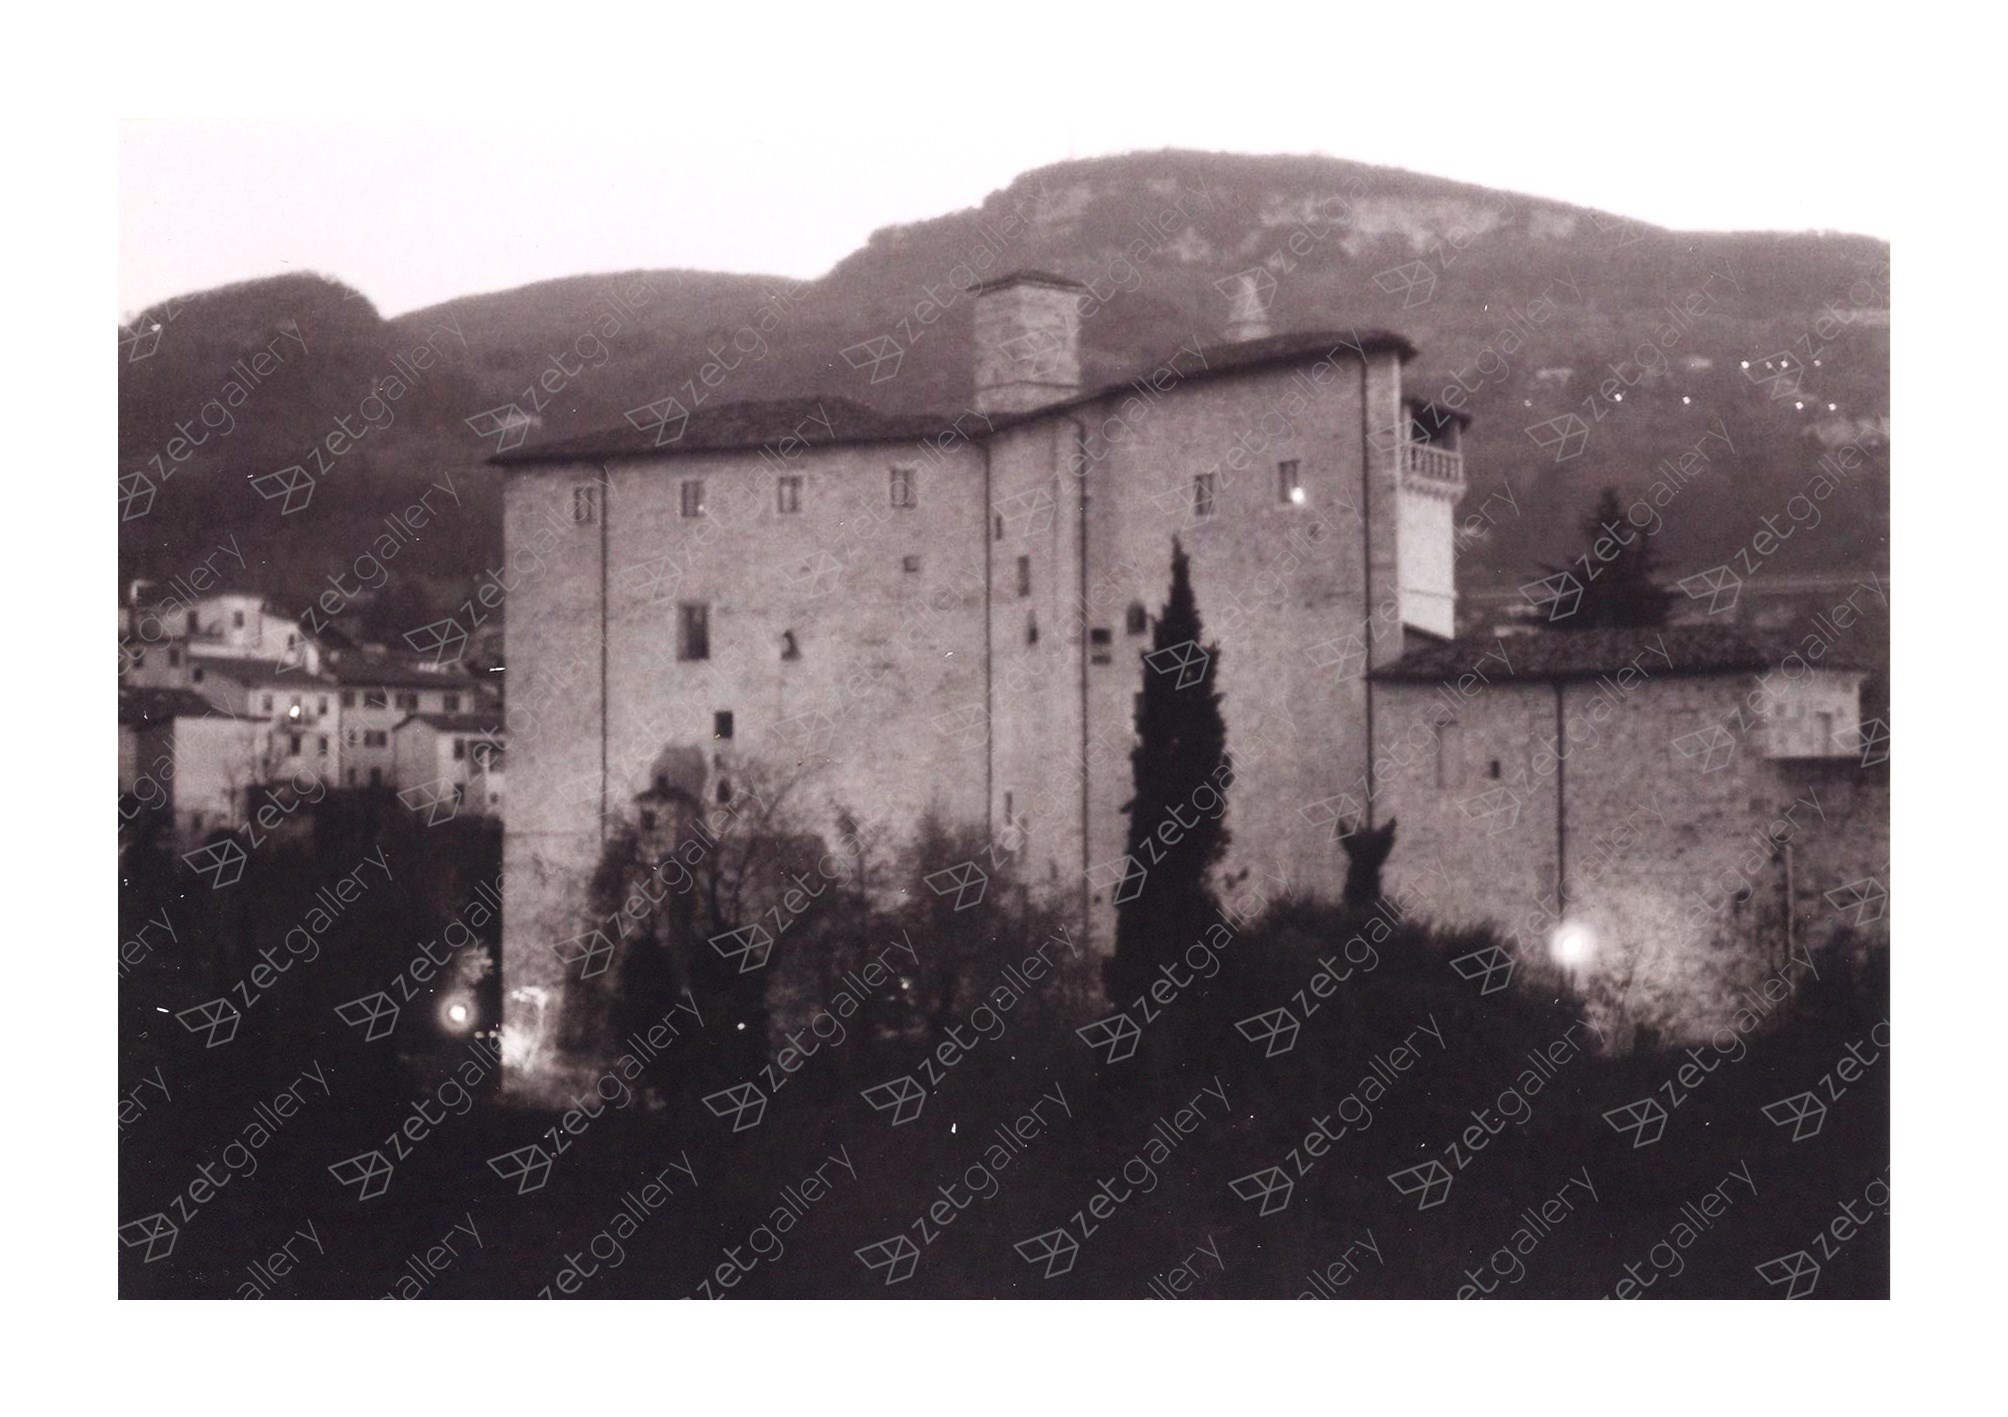 Castle, original Architecture Analog Photography by Tomé Capa